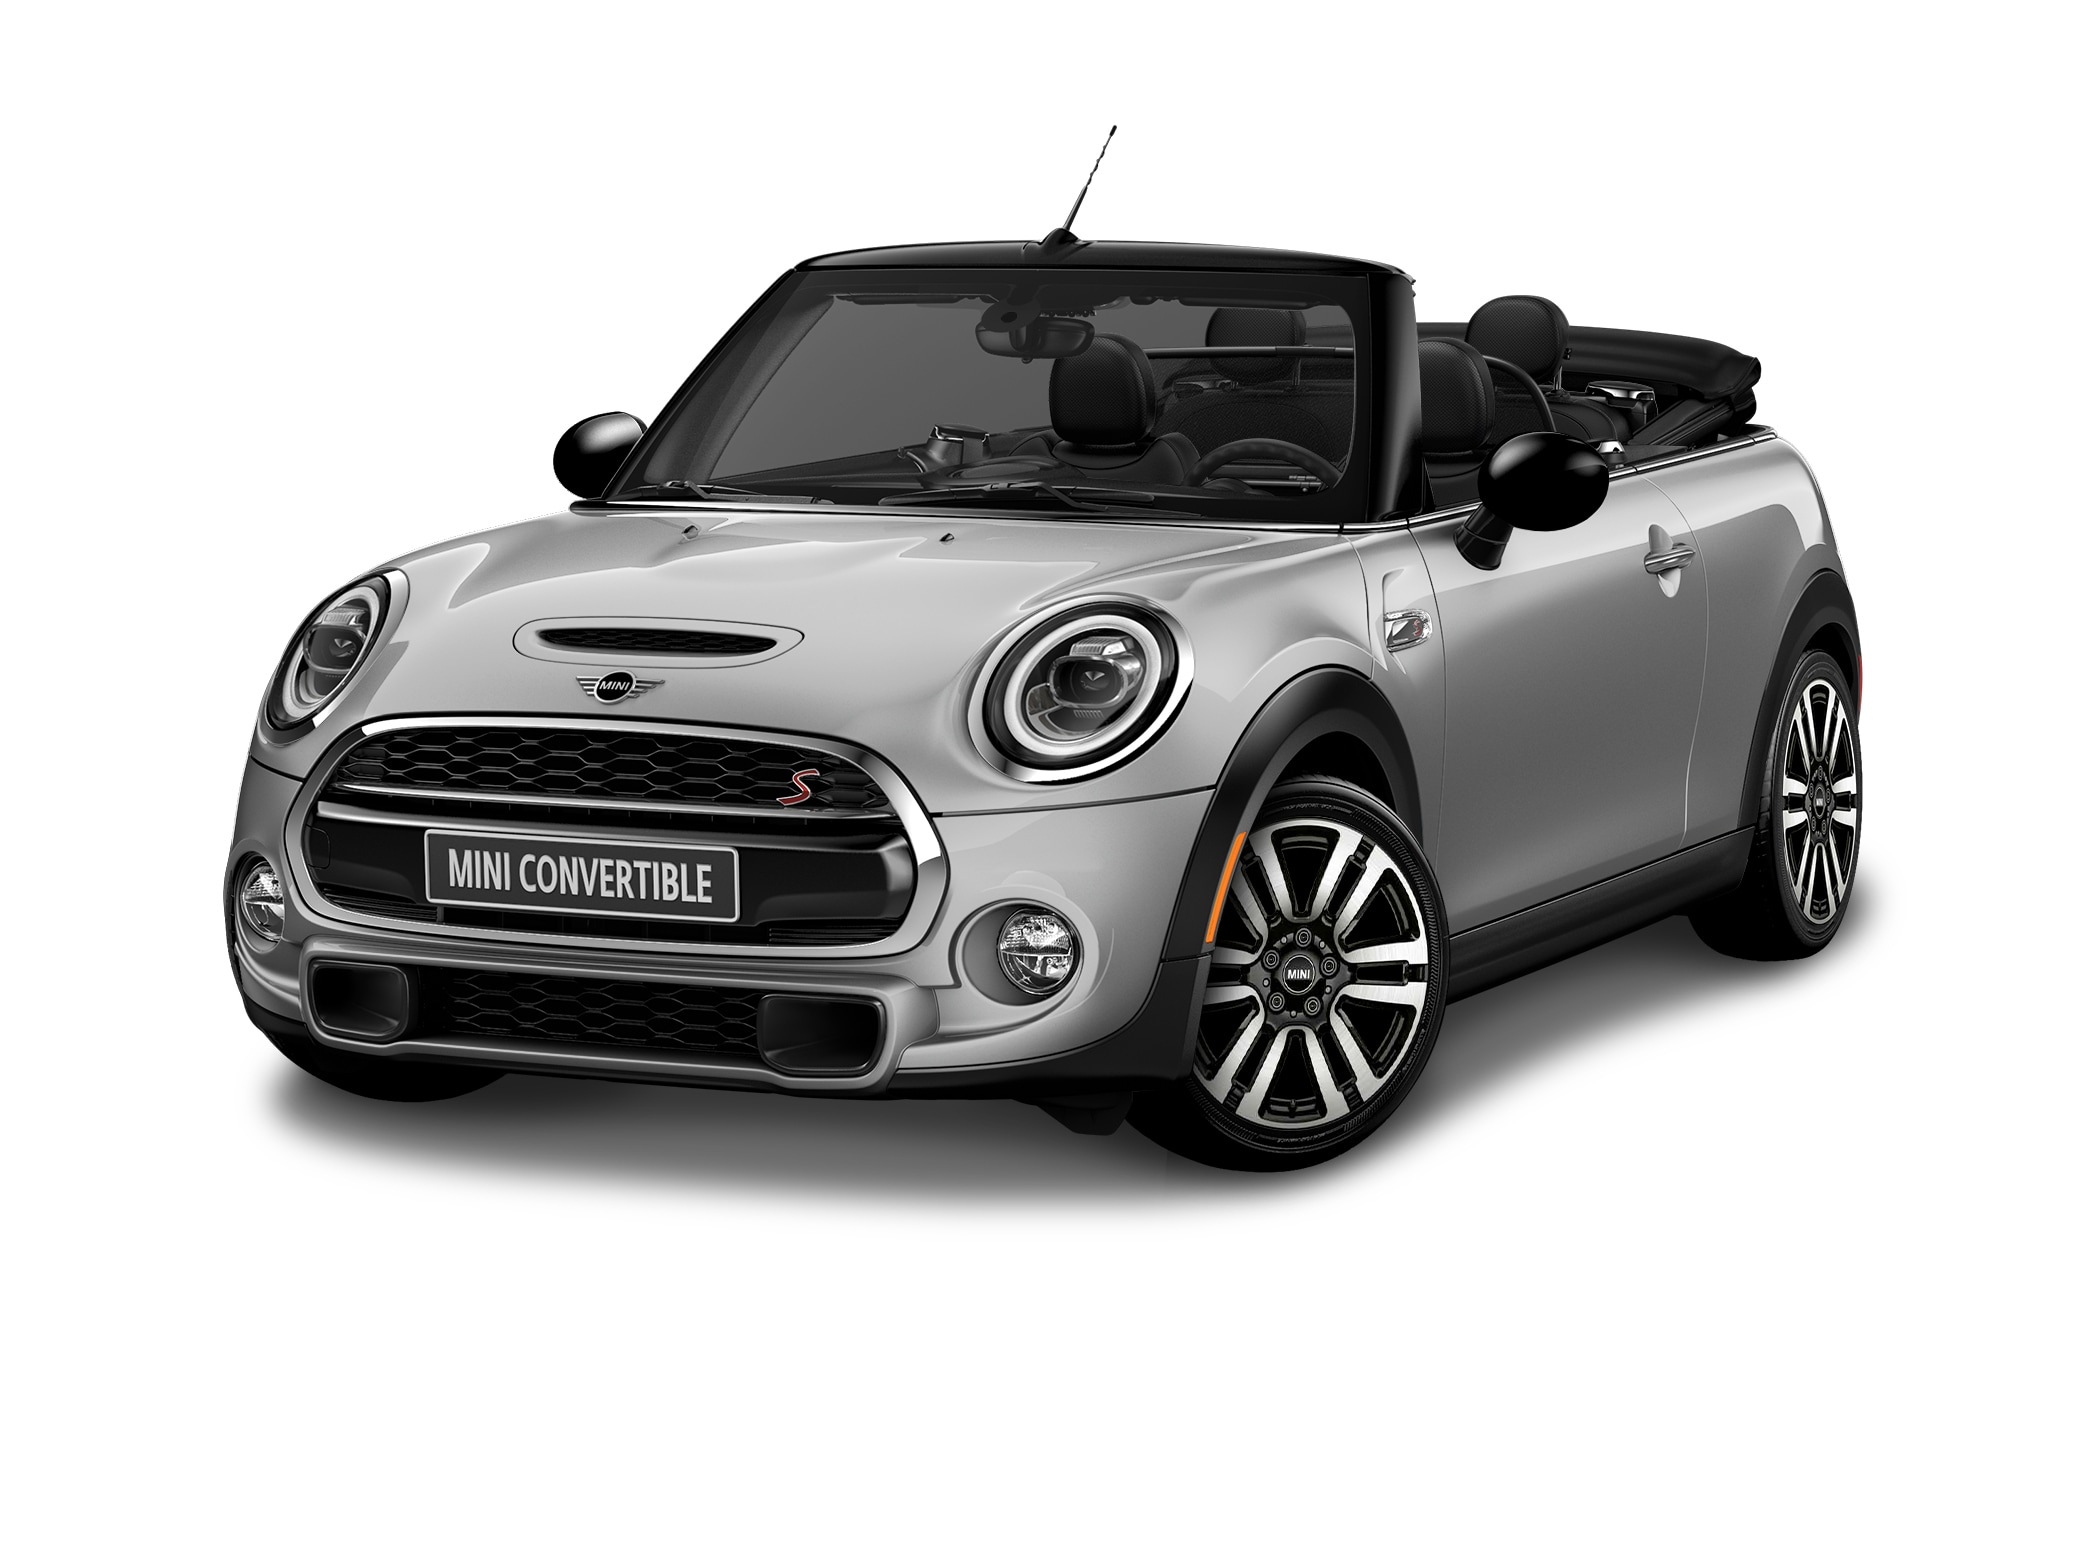 bmw mini cooper convertible workshop manual 2019 ebook. Black Bedroom Furniture Sets. Home Design Ideas